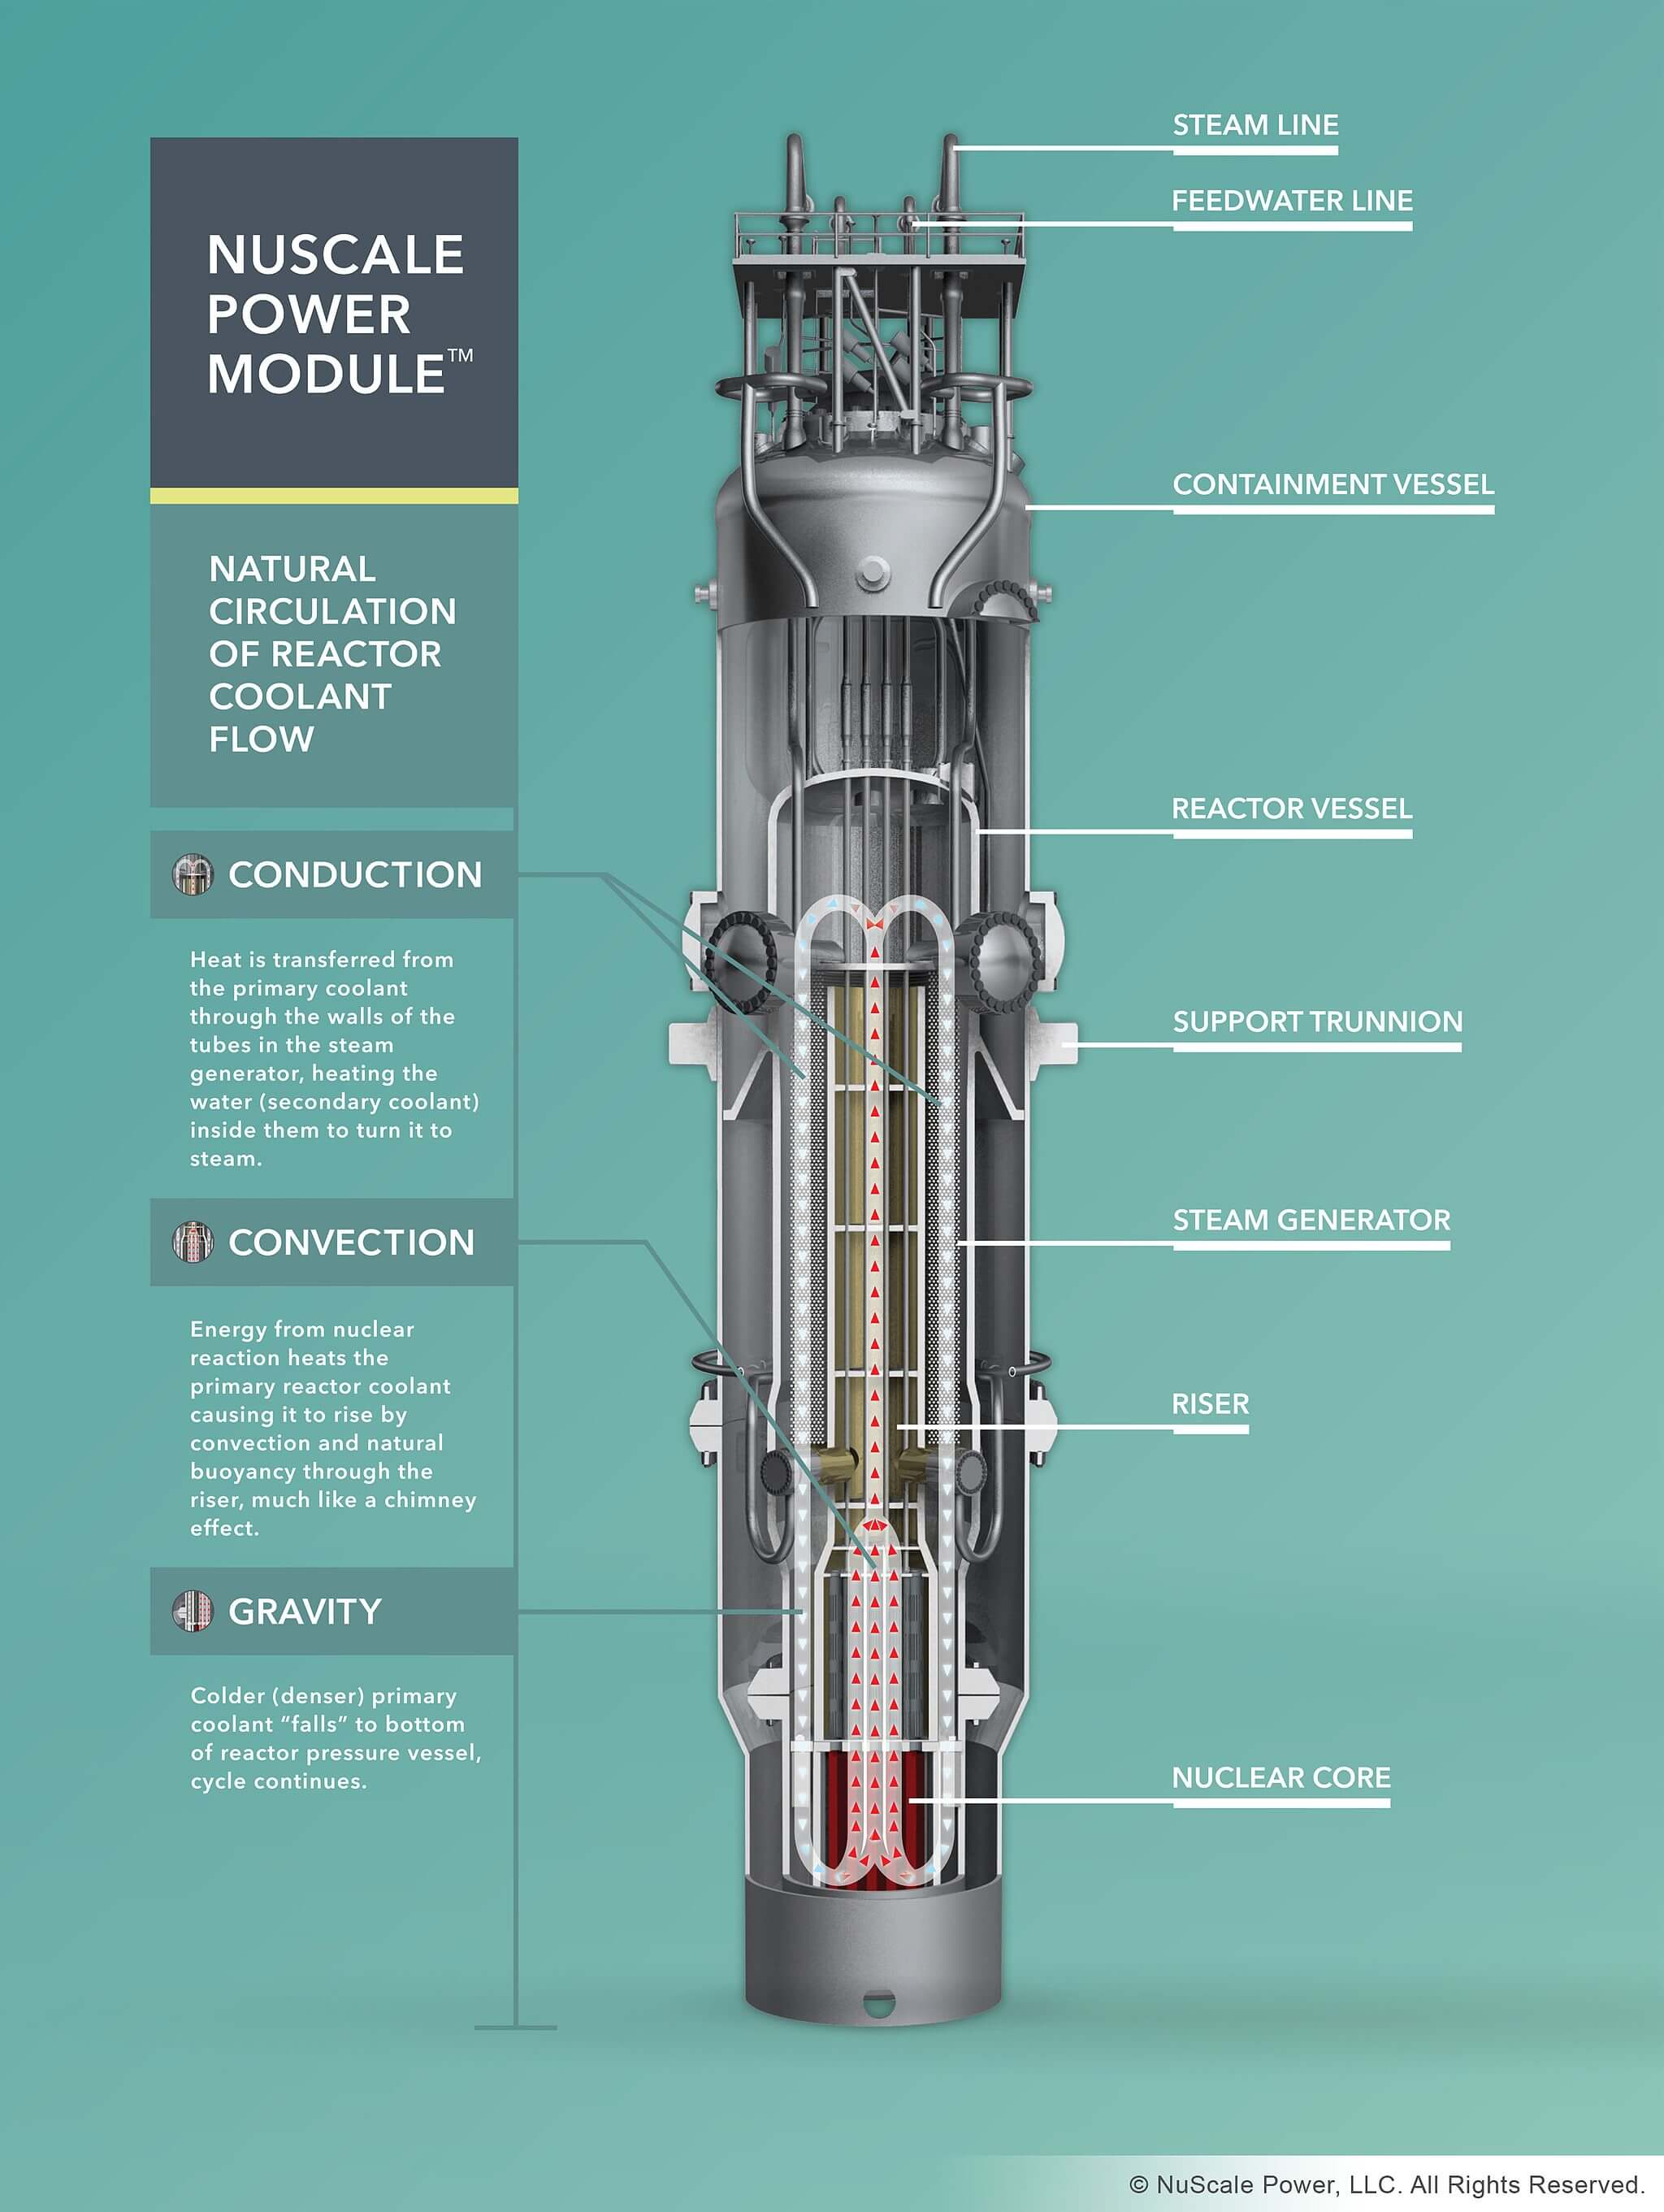 NuScale malý modulární reaktor, zdroj: https://en.wikipedia.org/wiki/NuScale_Power#/media/File:Diagram_of_a_NuScale_reactor.jpg